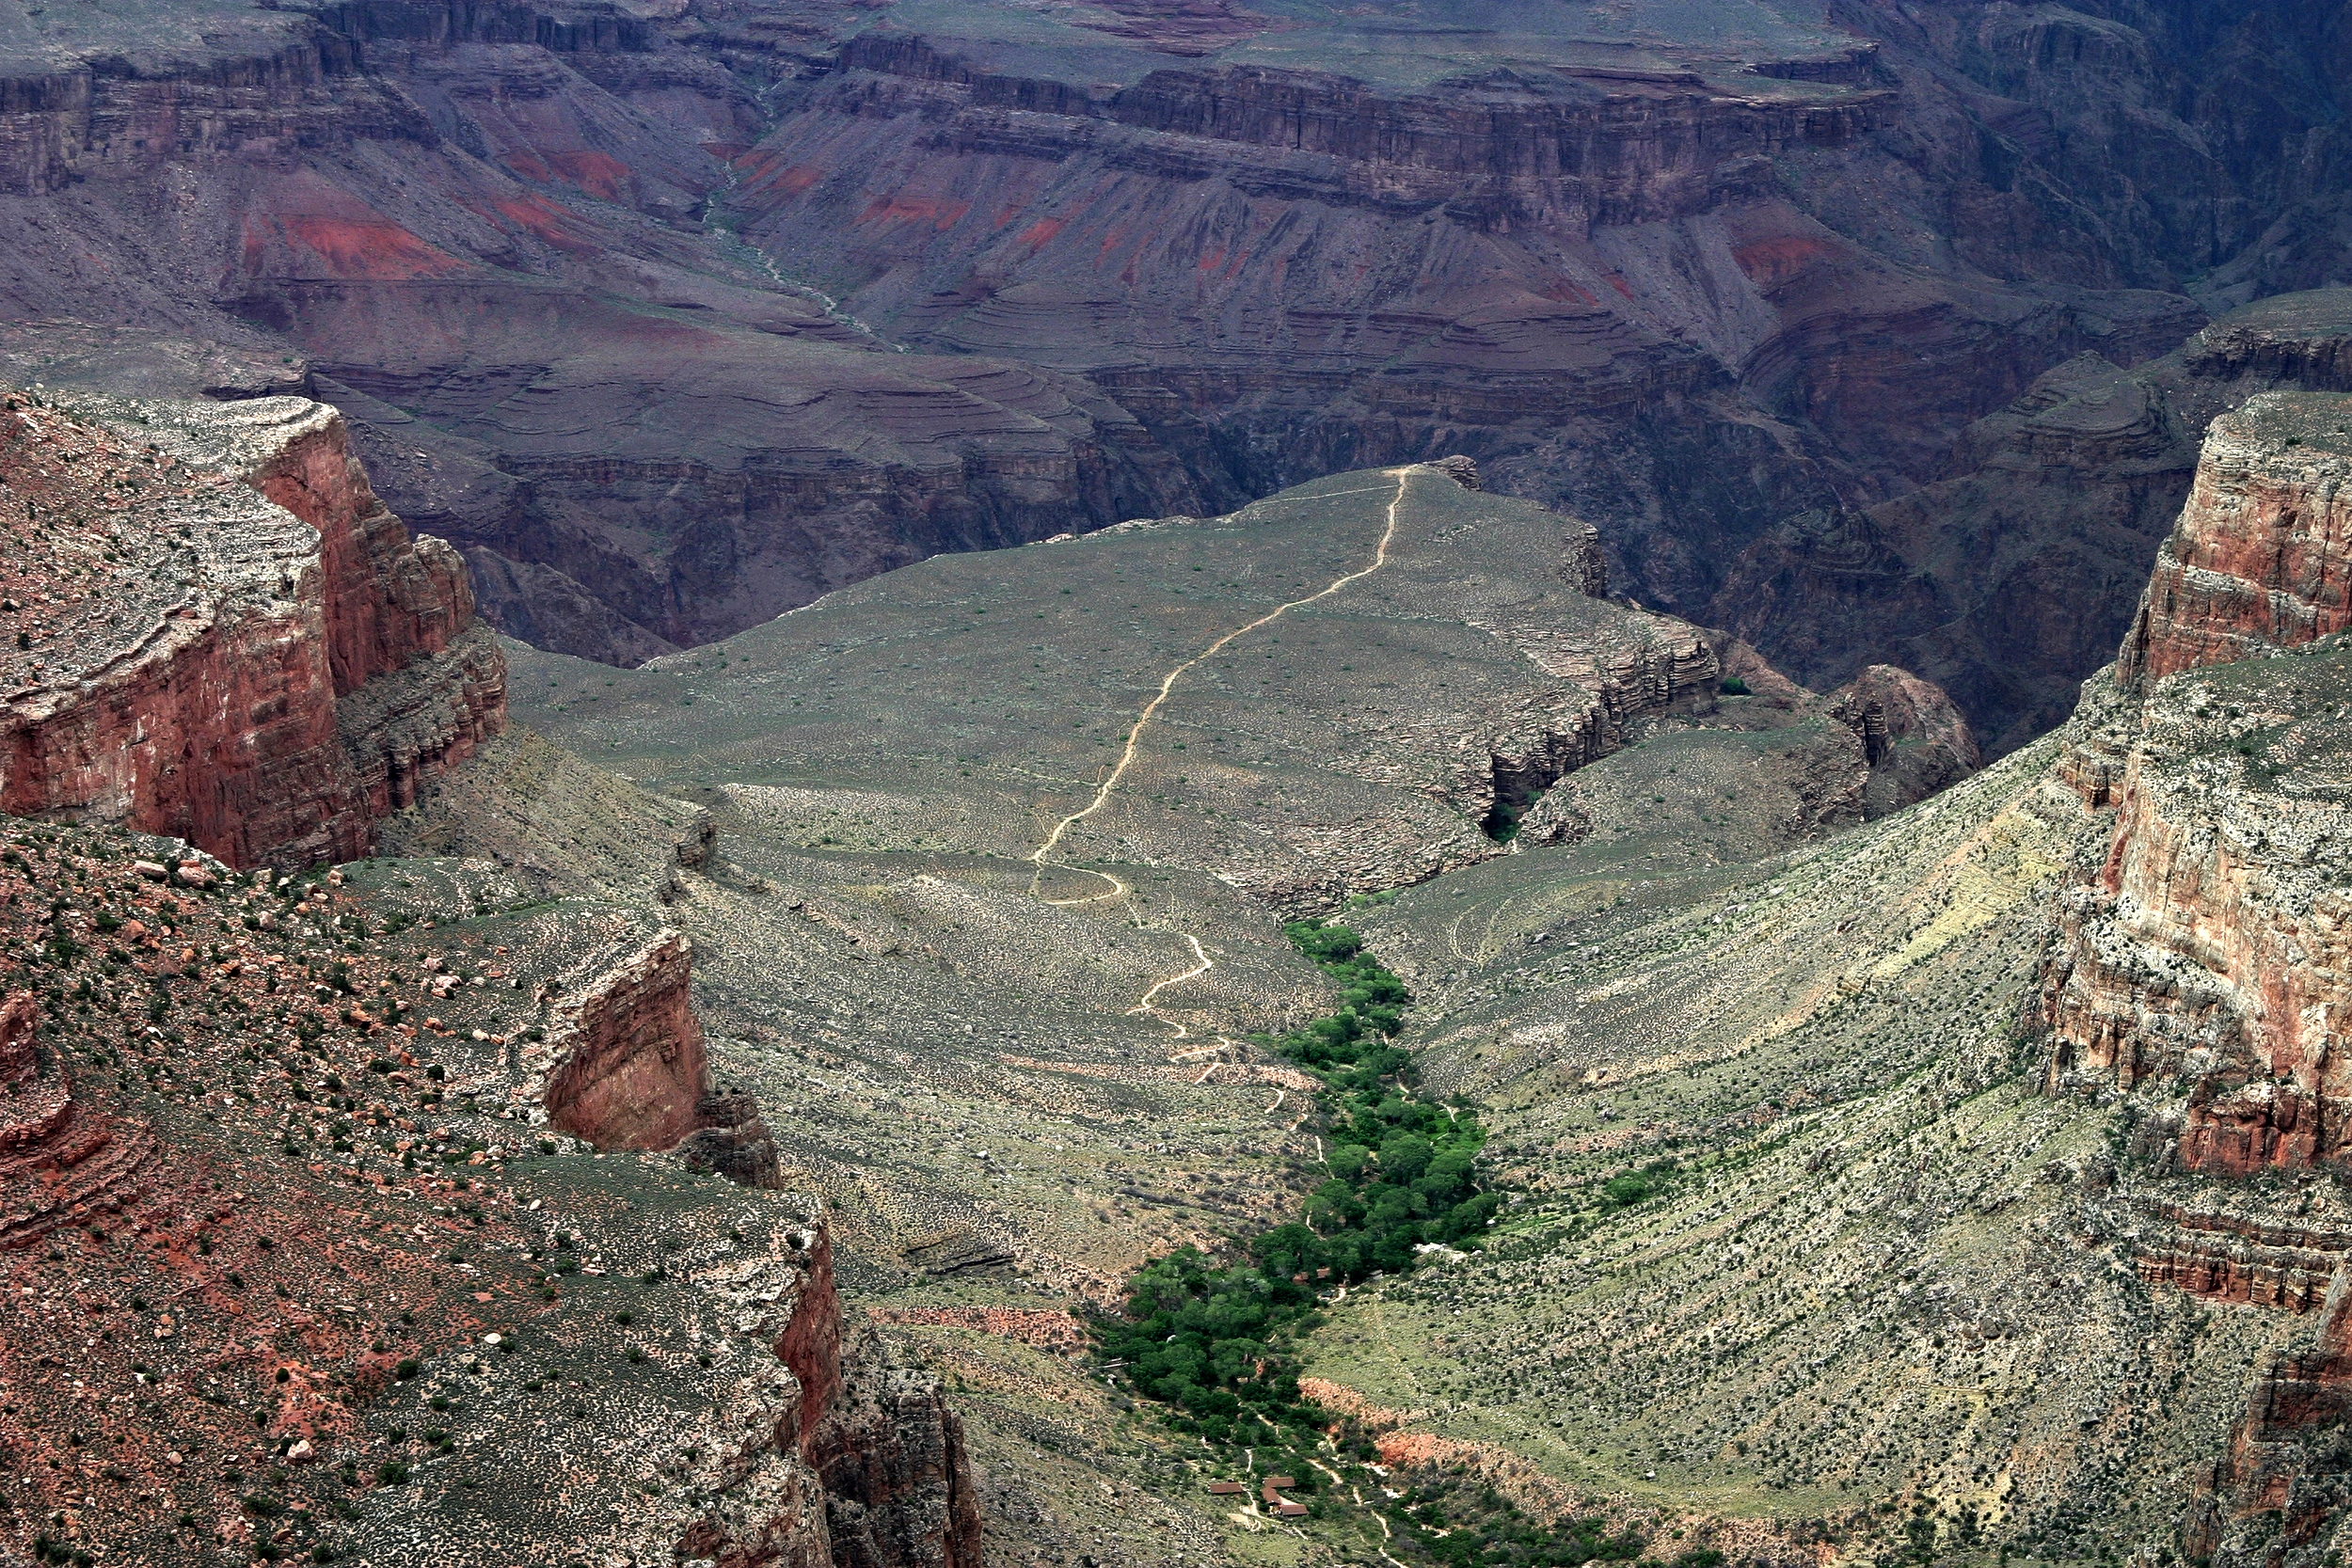 Indian Garden and Plateau Point, Grand Canyon